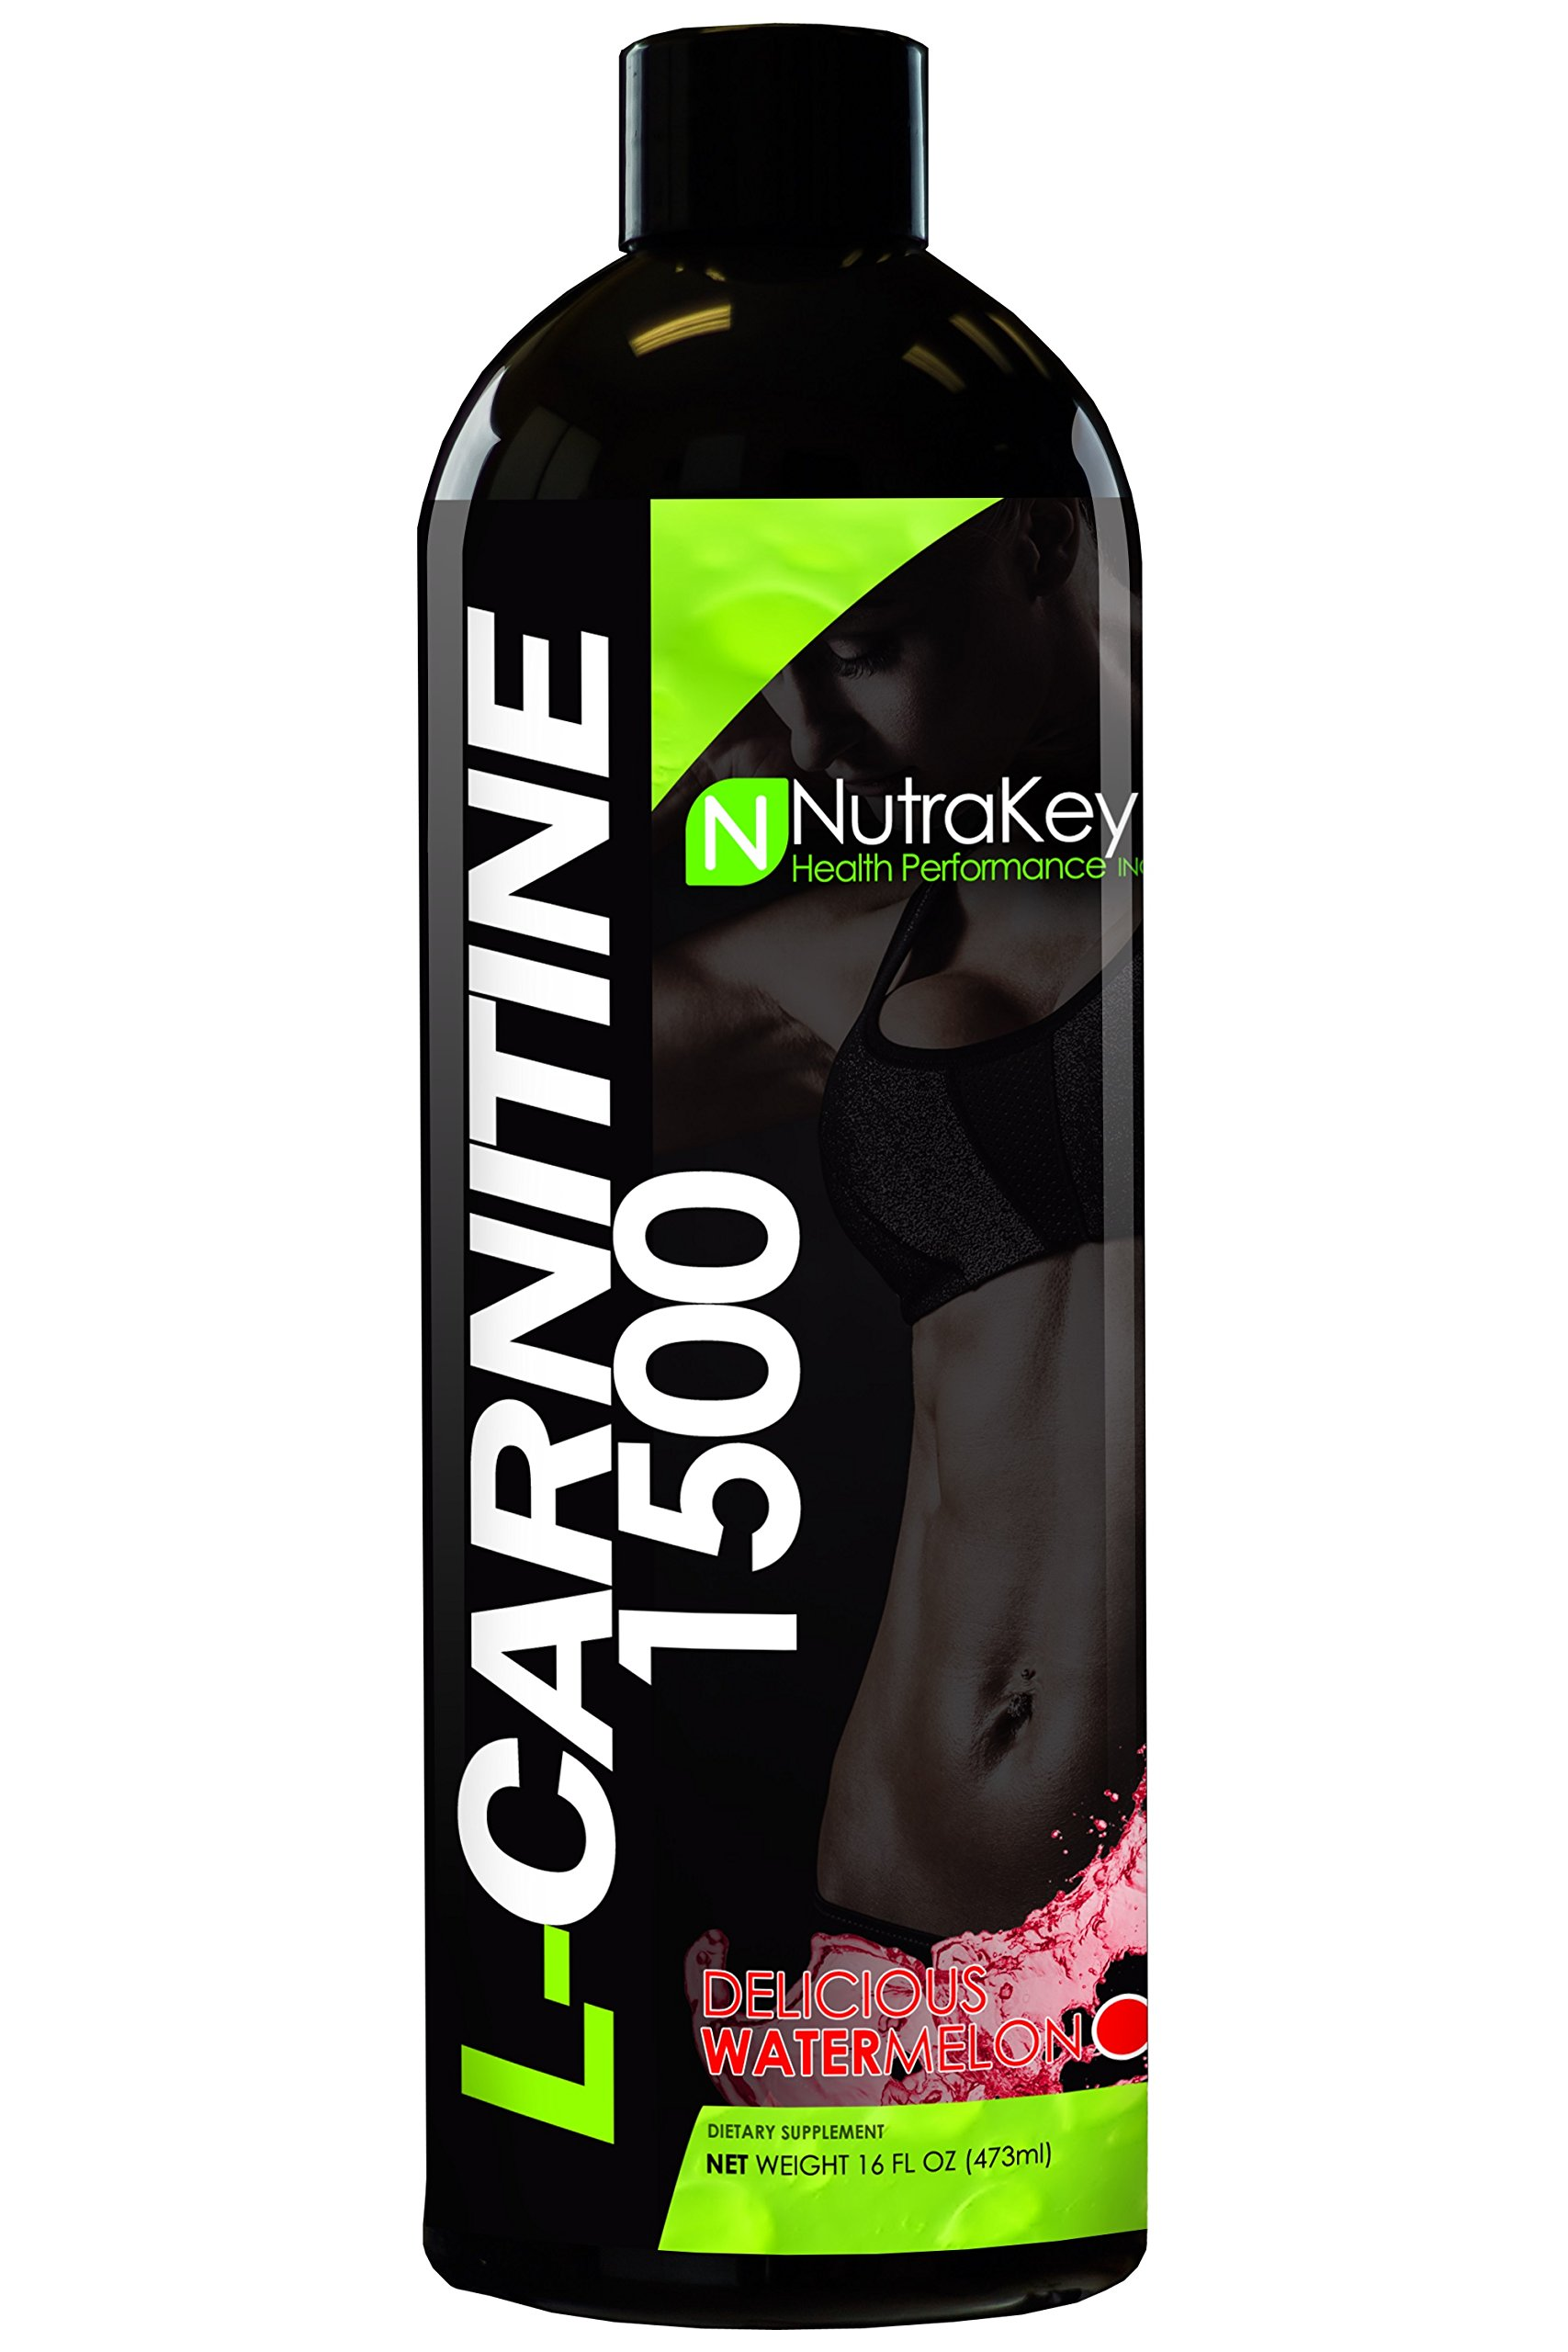 NutraKey Liquid L-Carnitine Watermelon Flavor, 16-Fluid Ounce